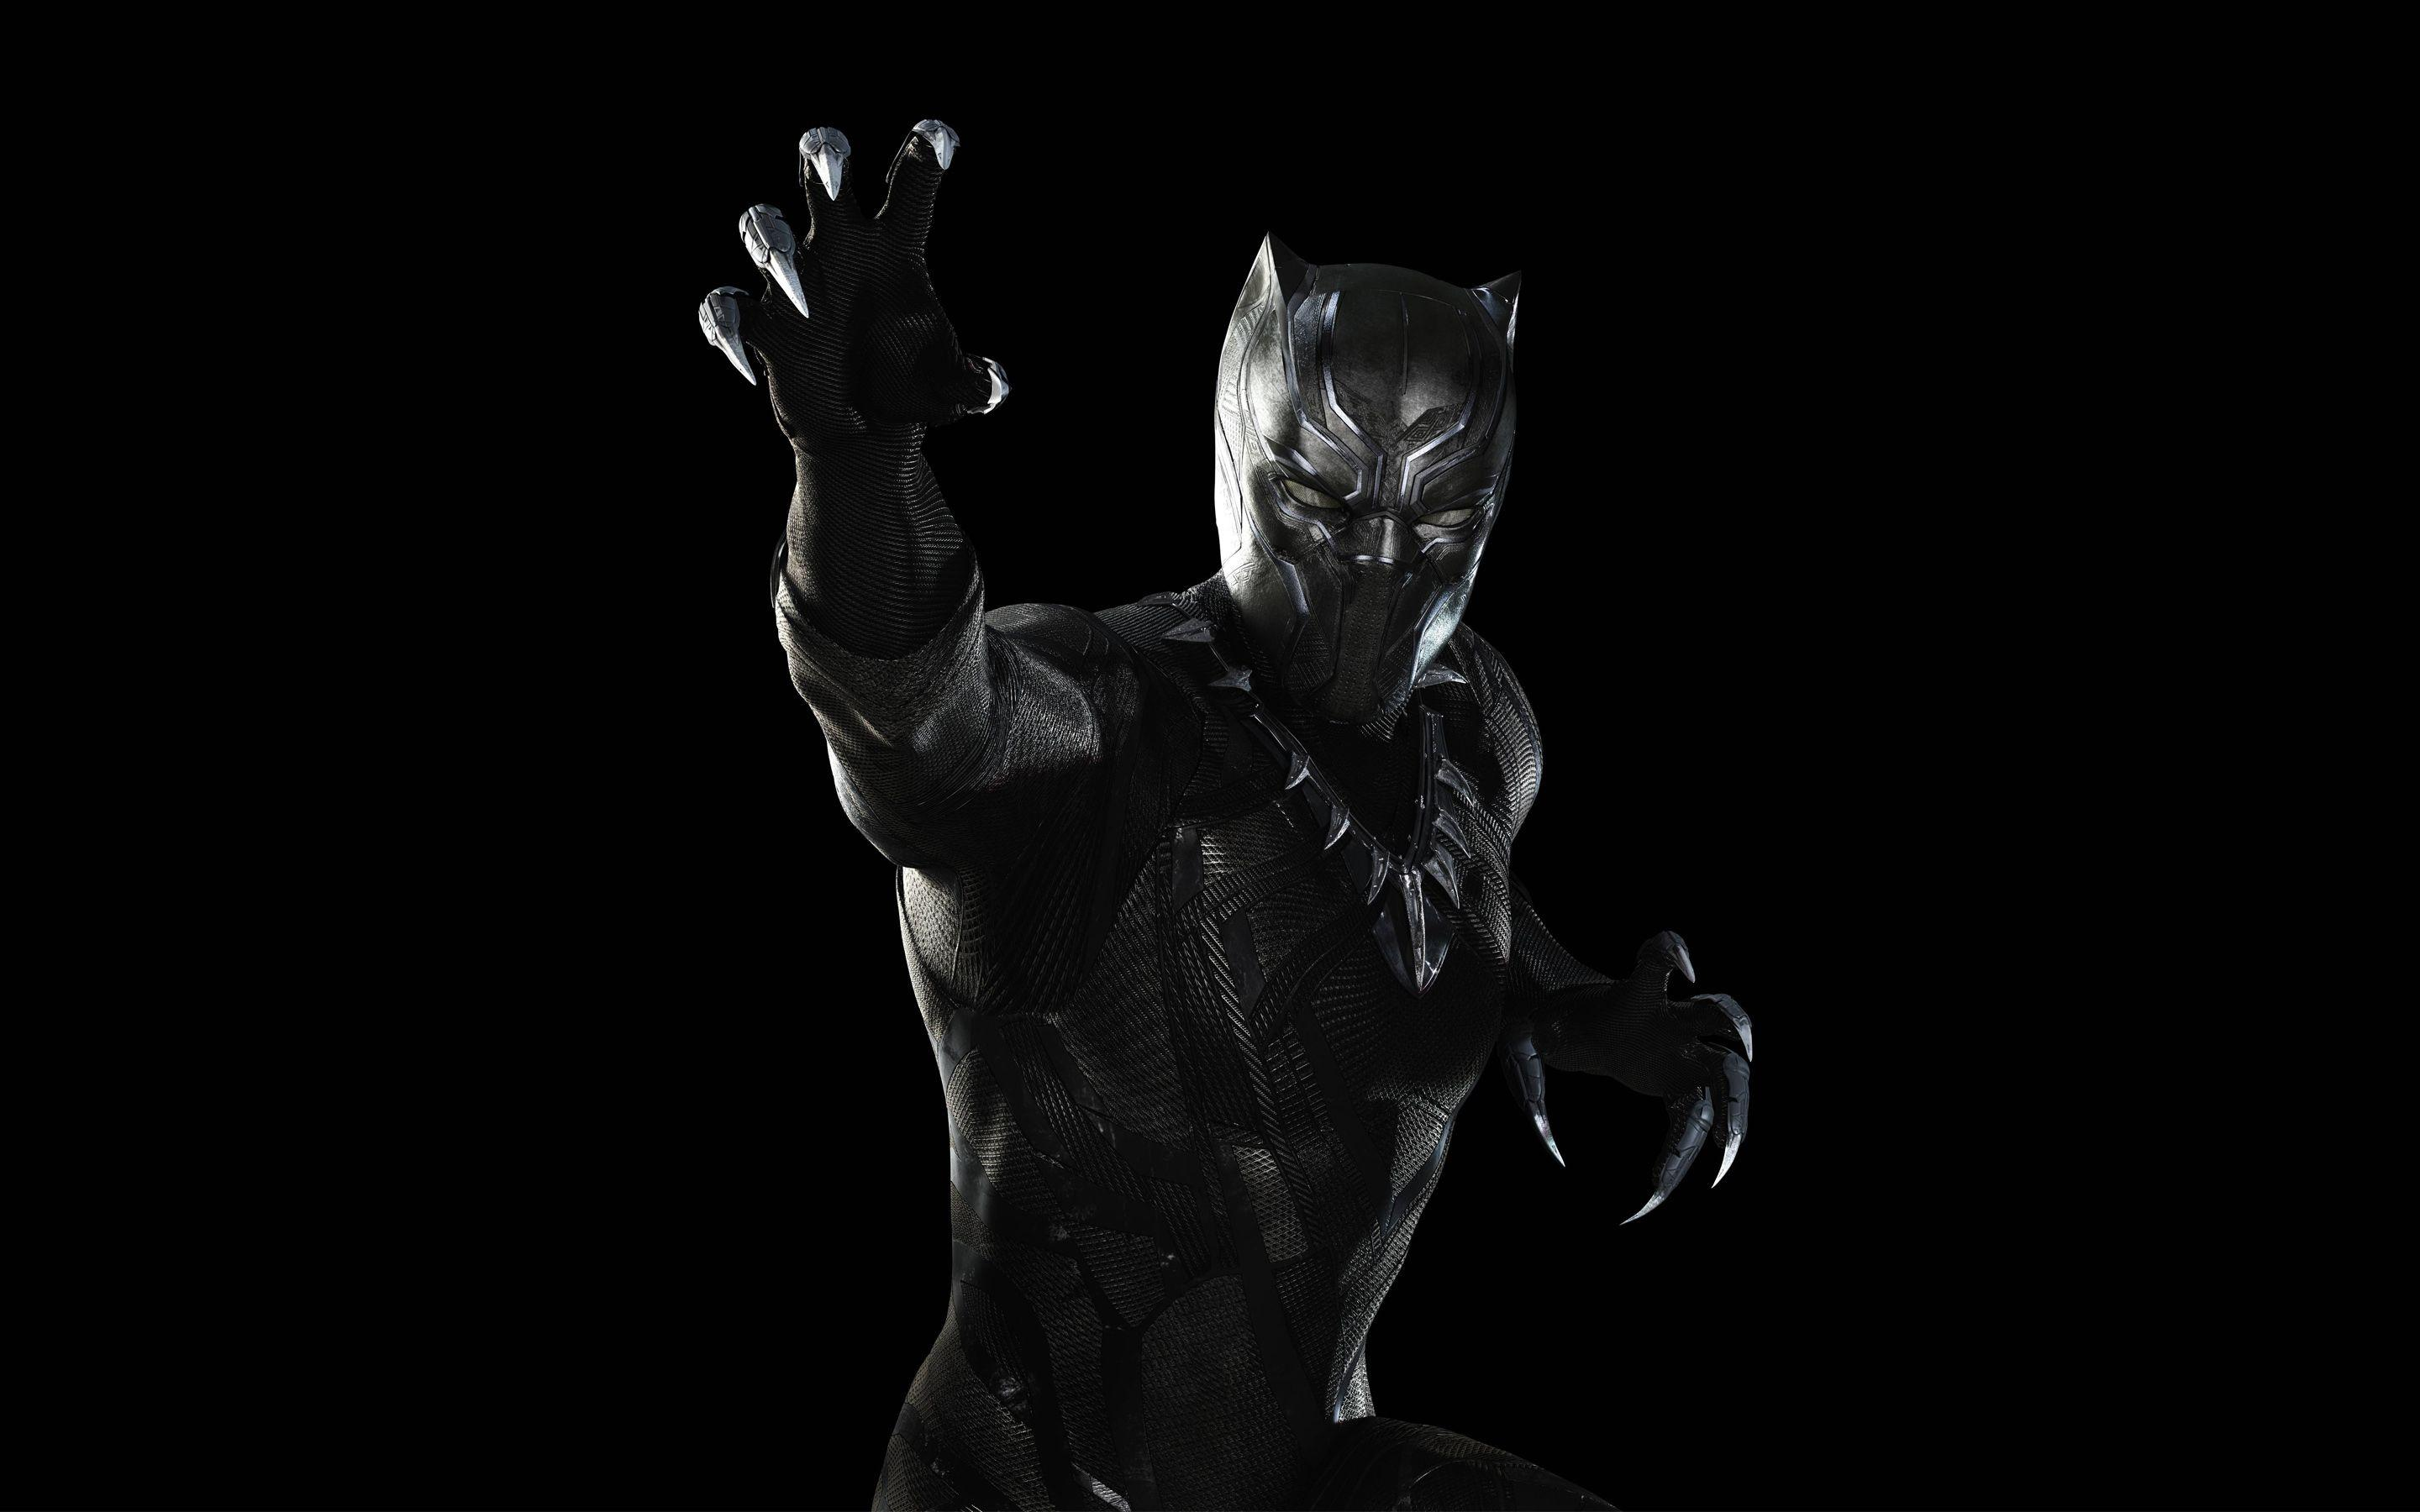 Black Panther Marvel Wallpapers 2880x1800